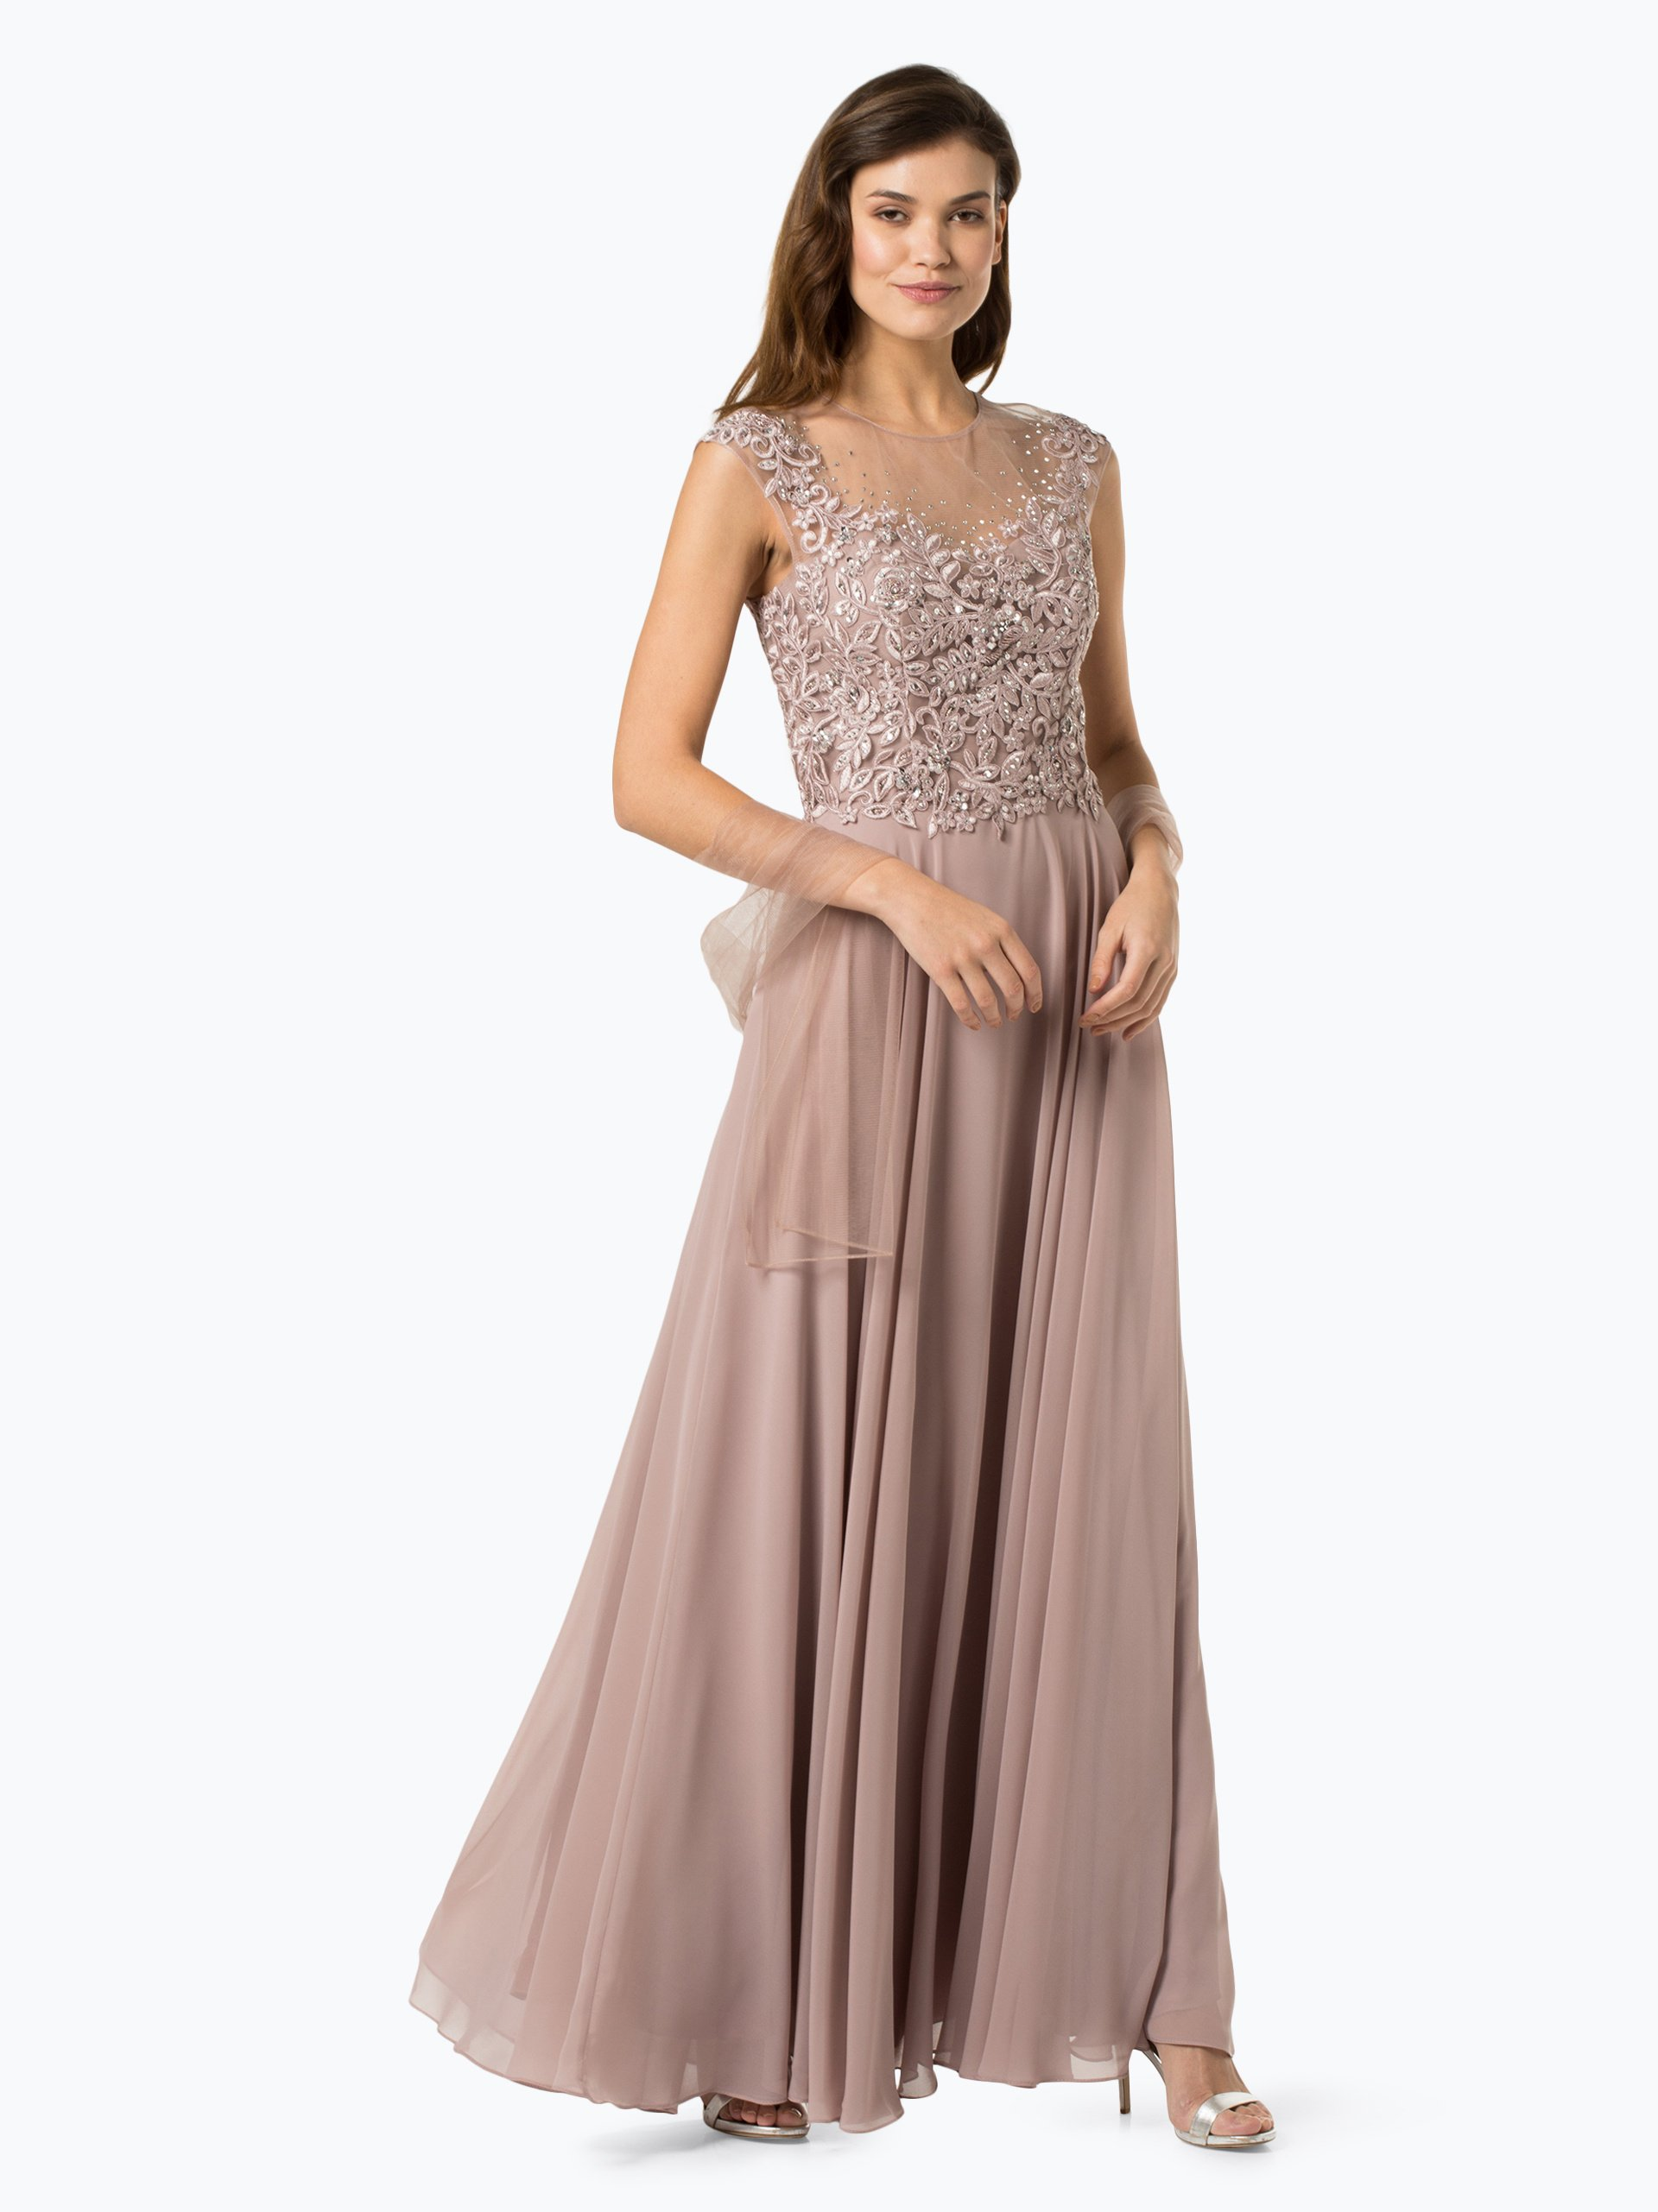 Luxuar Fashion Damen Abendkleid mit Stola